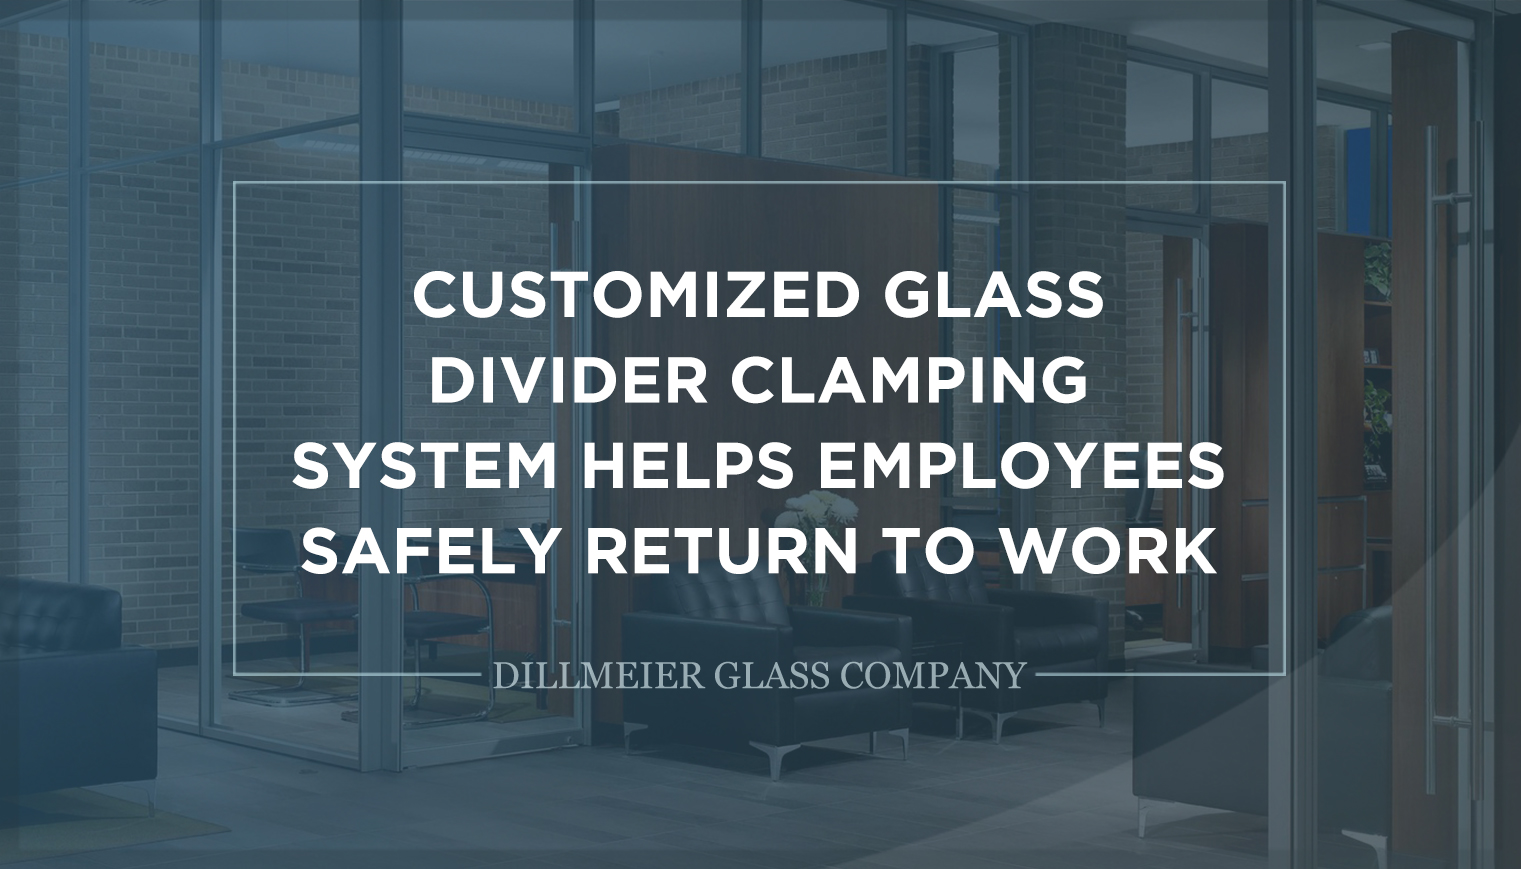 Title Graphic - Customized Glass Divider Clamping System Helps Employees Safely Return to Work During COVID-19